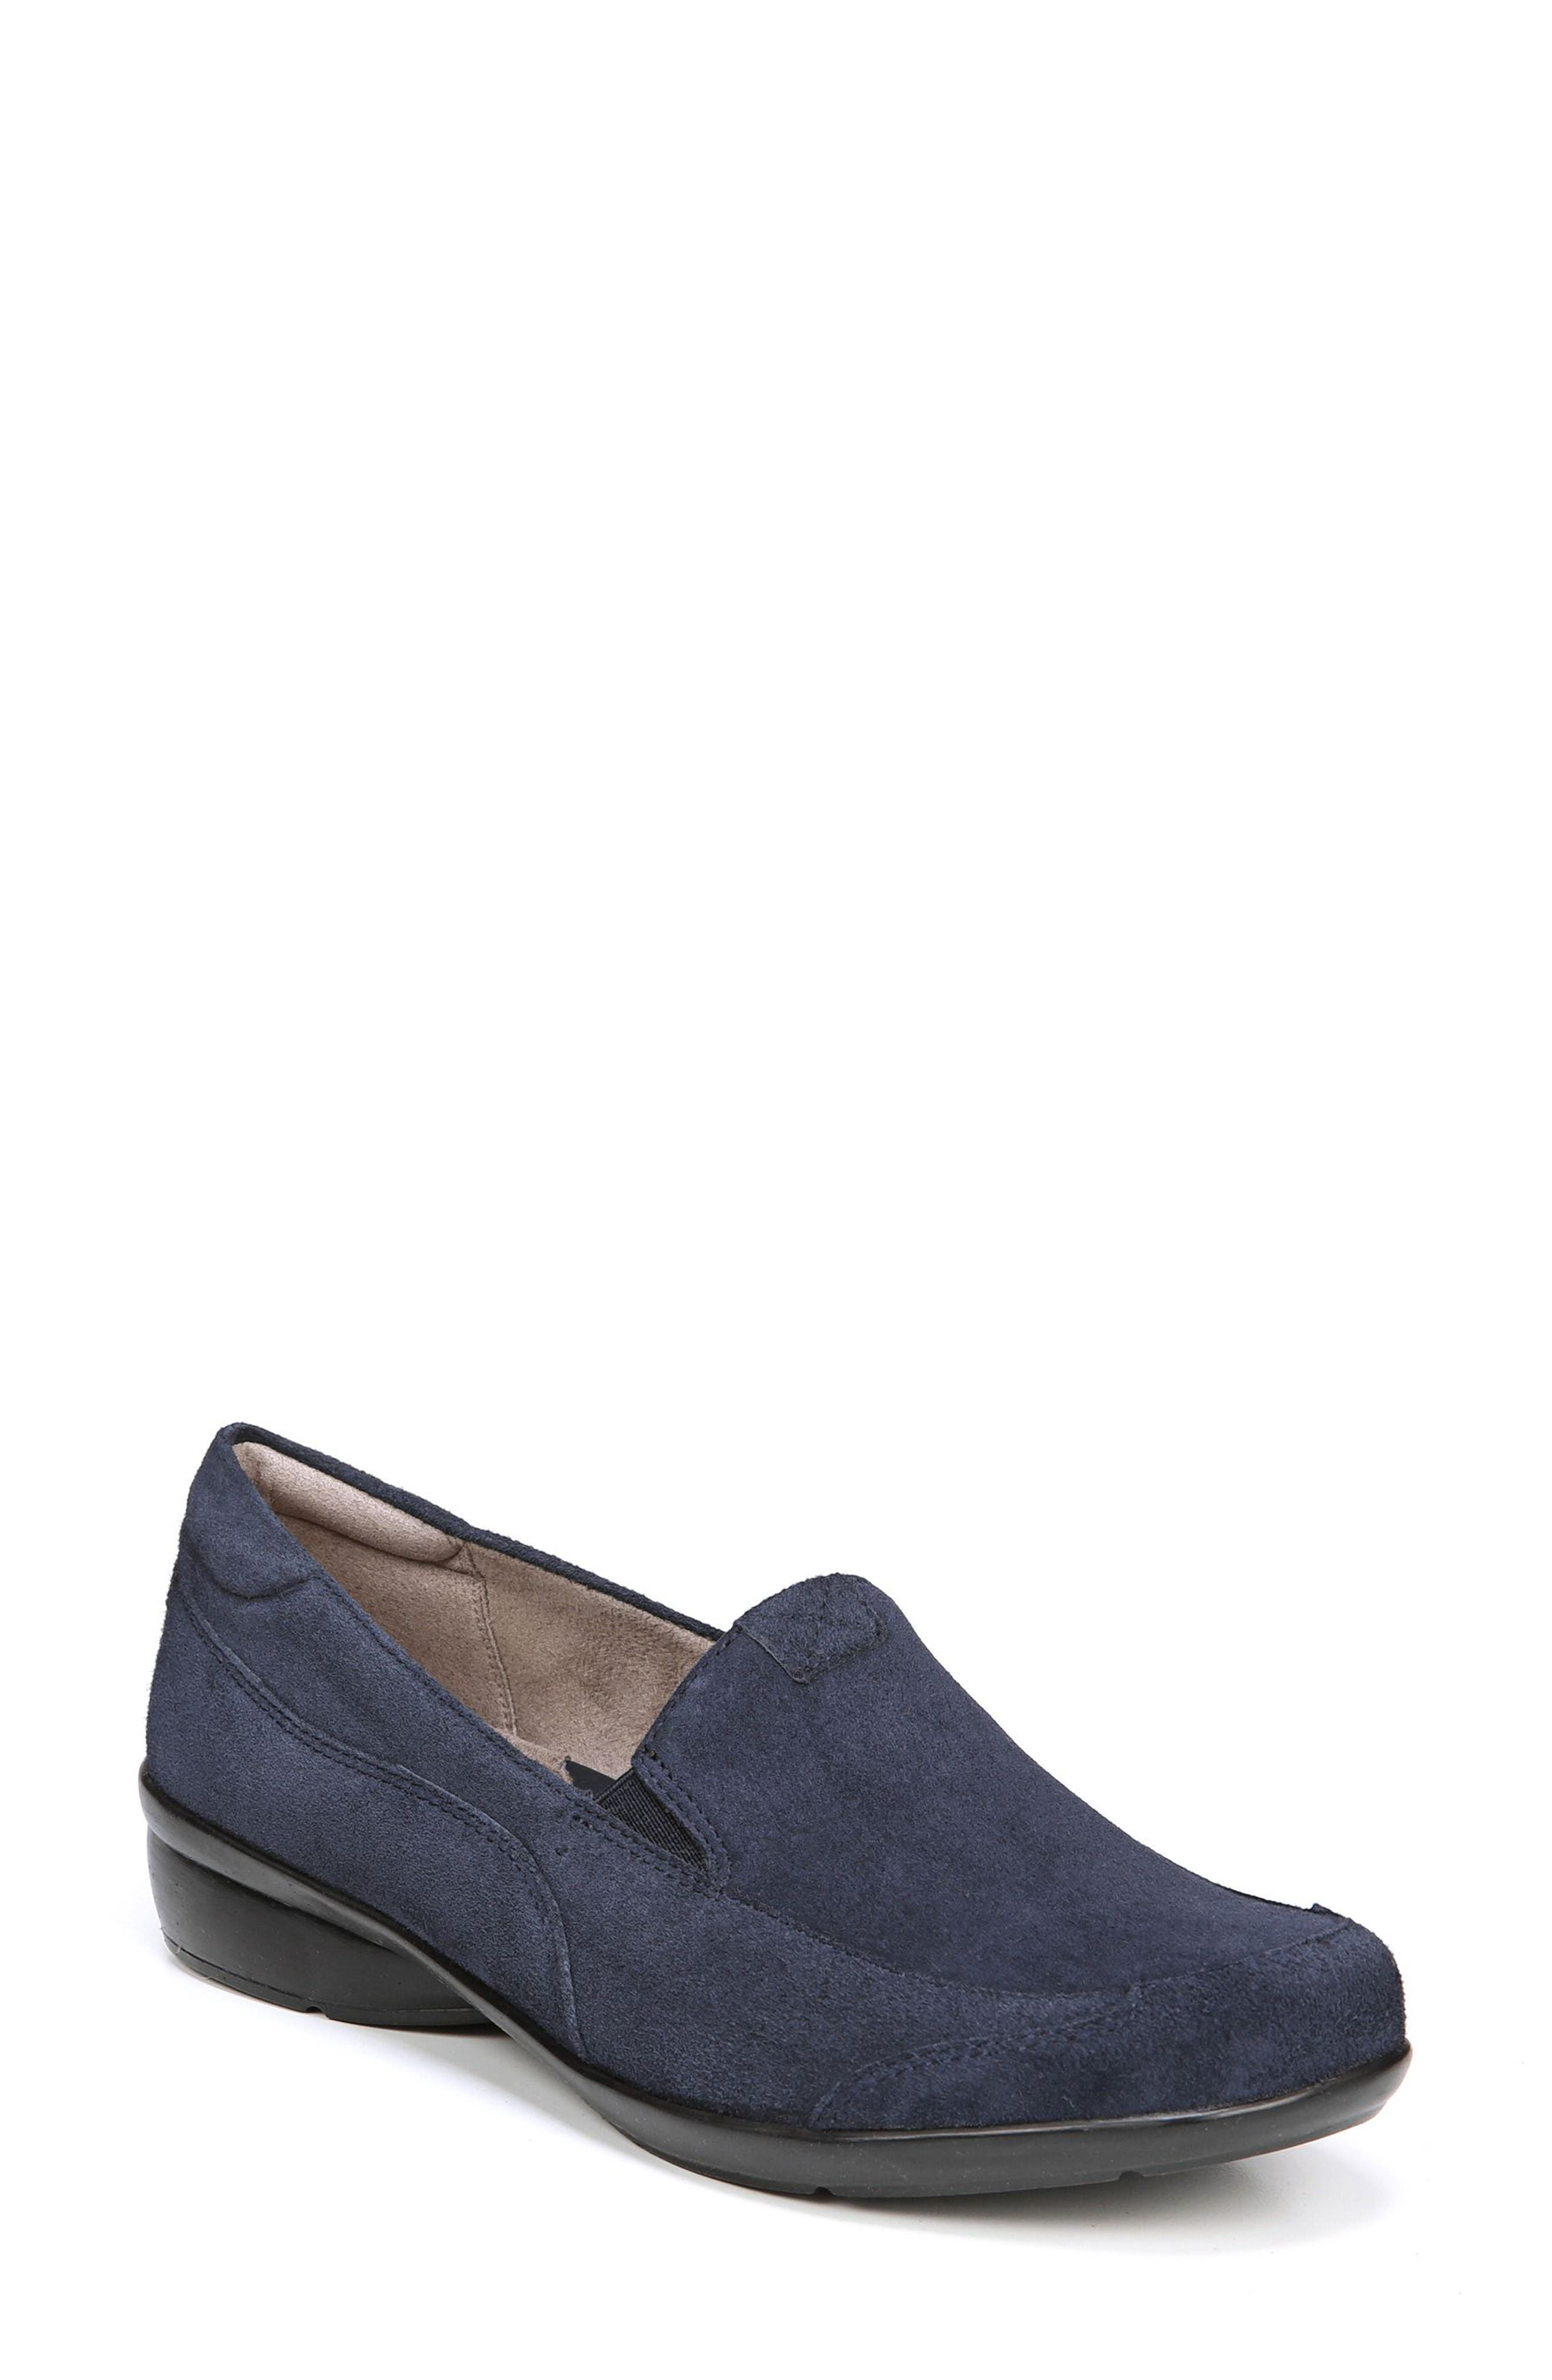 'Channing' Loafer,                             Main thumbnail 1, color,                             Navy Suede